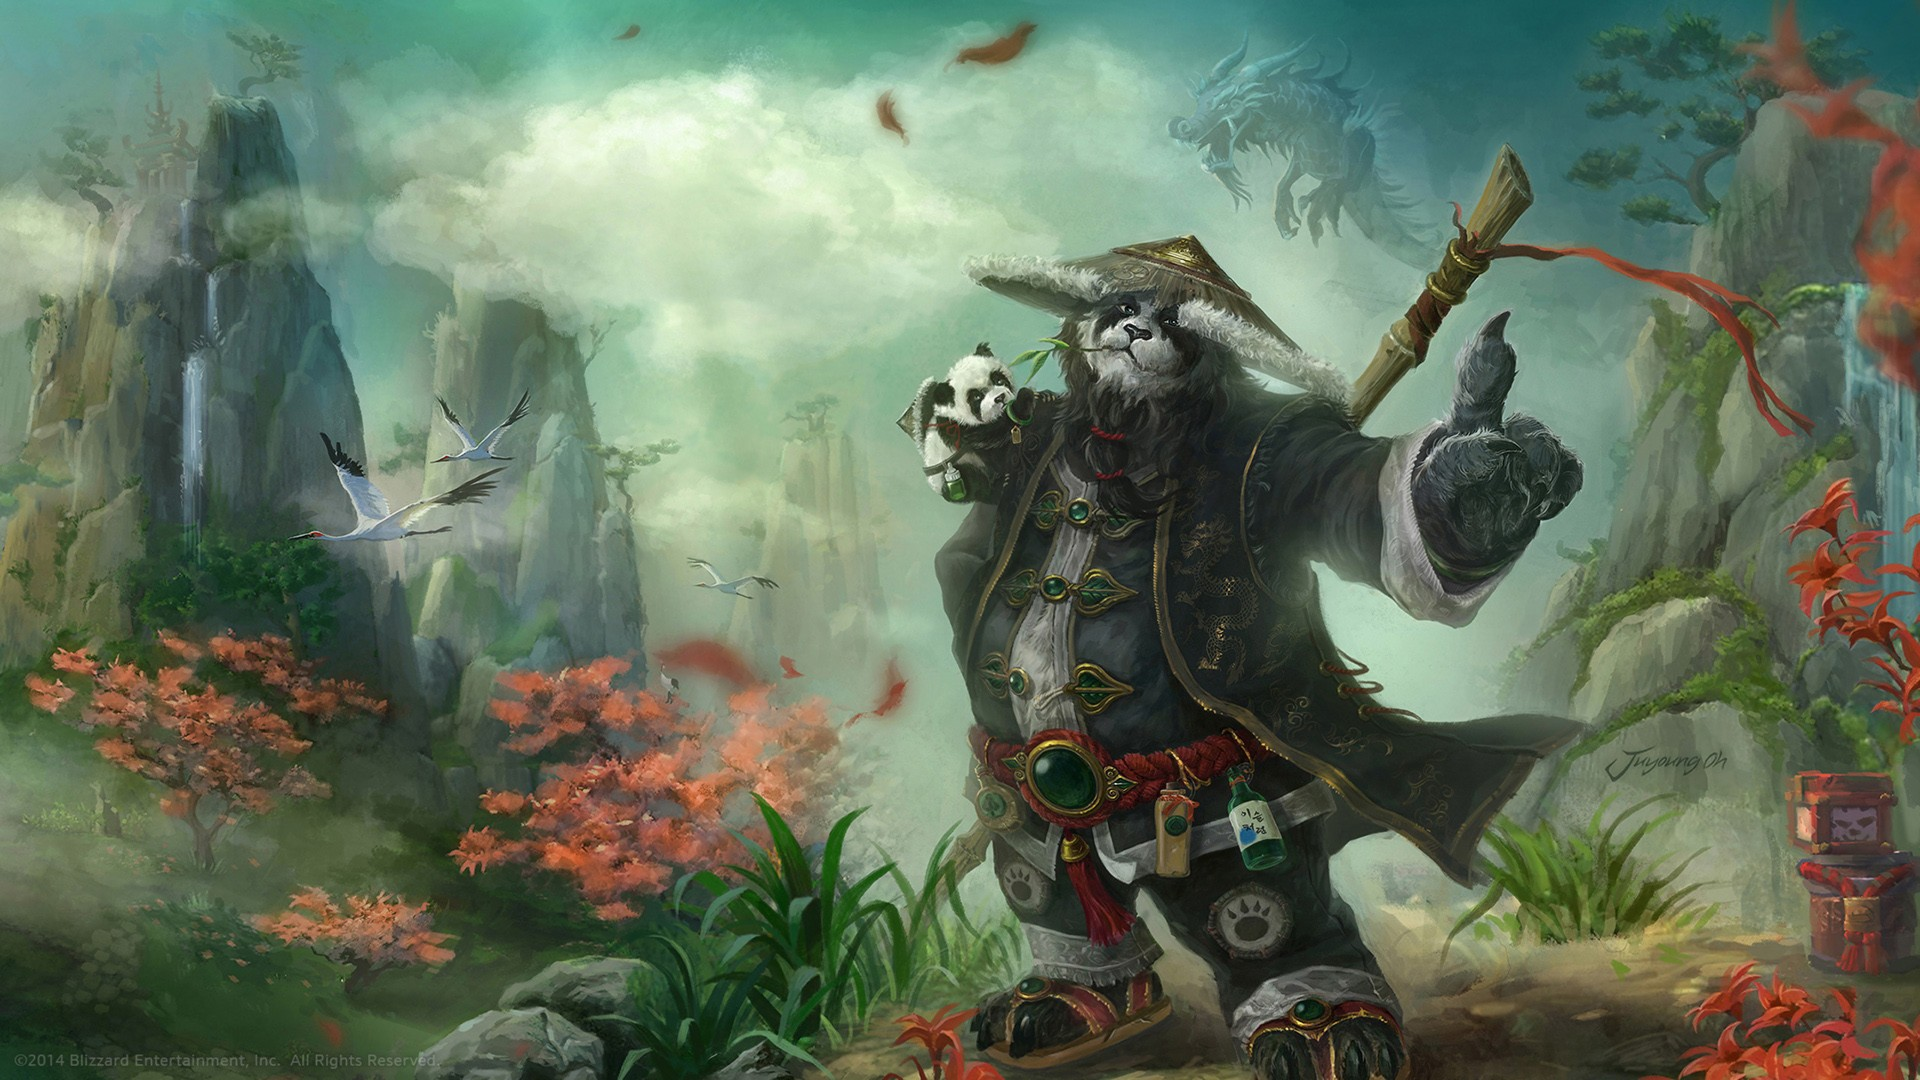 General 1920x1080 World of Warcraft World of Warcraft: Mists of Pandaria video games